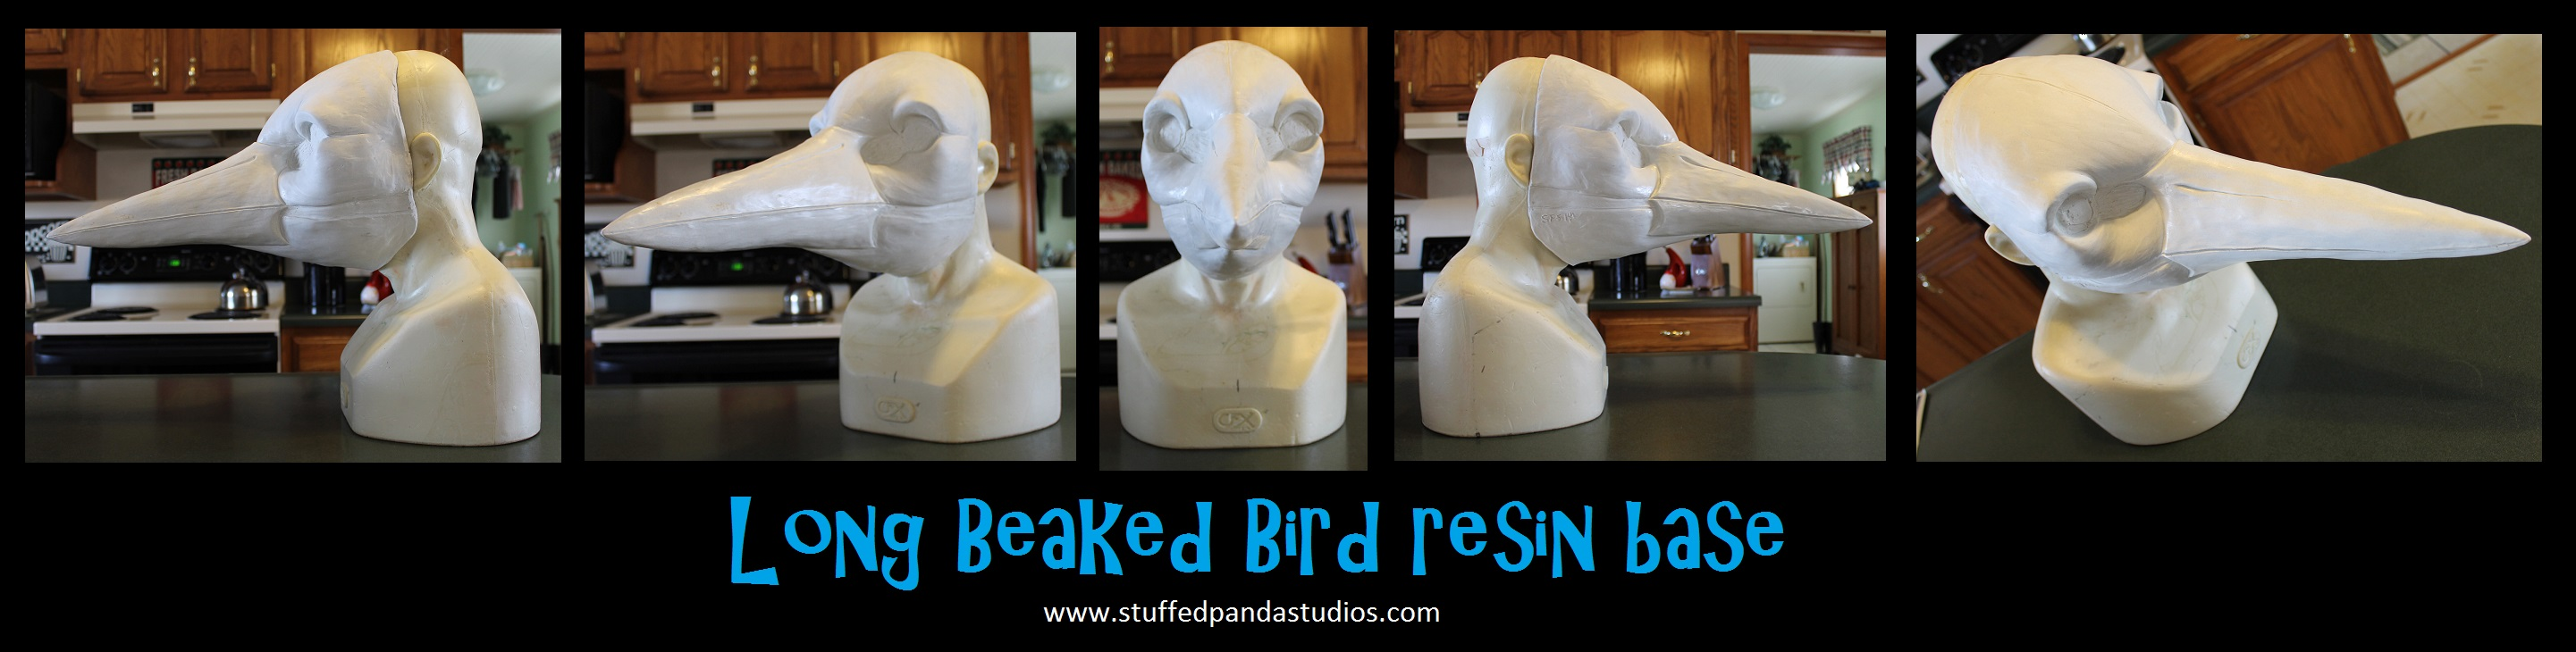 Long Beaked Bird resin base heron, crane, crow,etc by stuffedpanda-cosplay